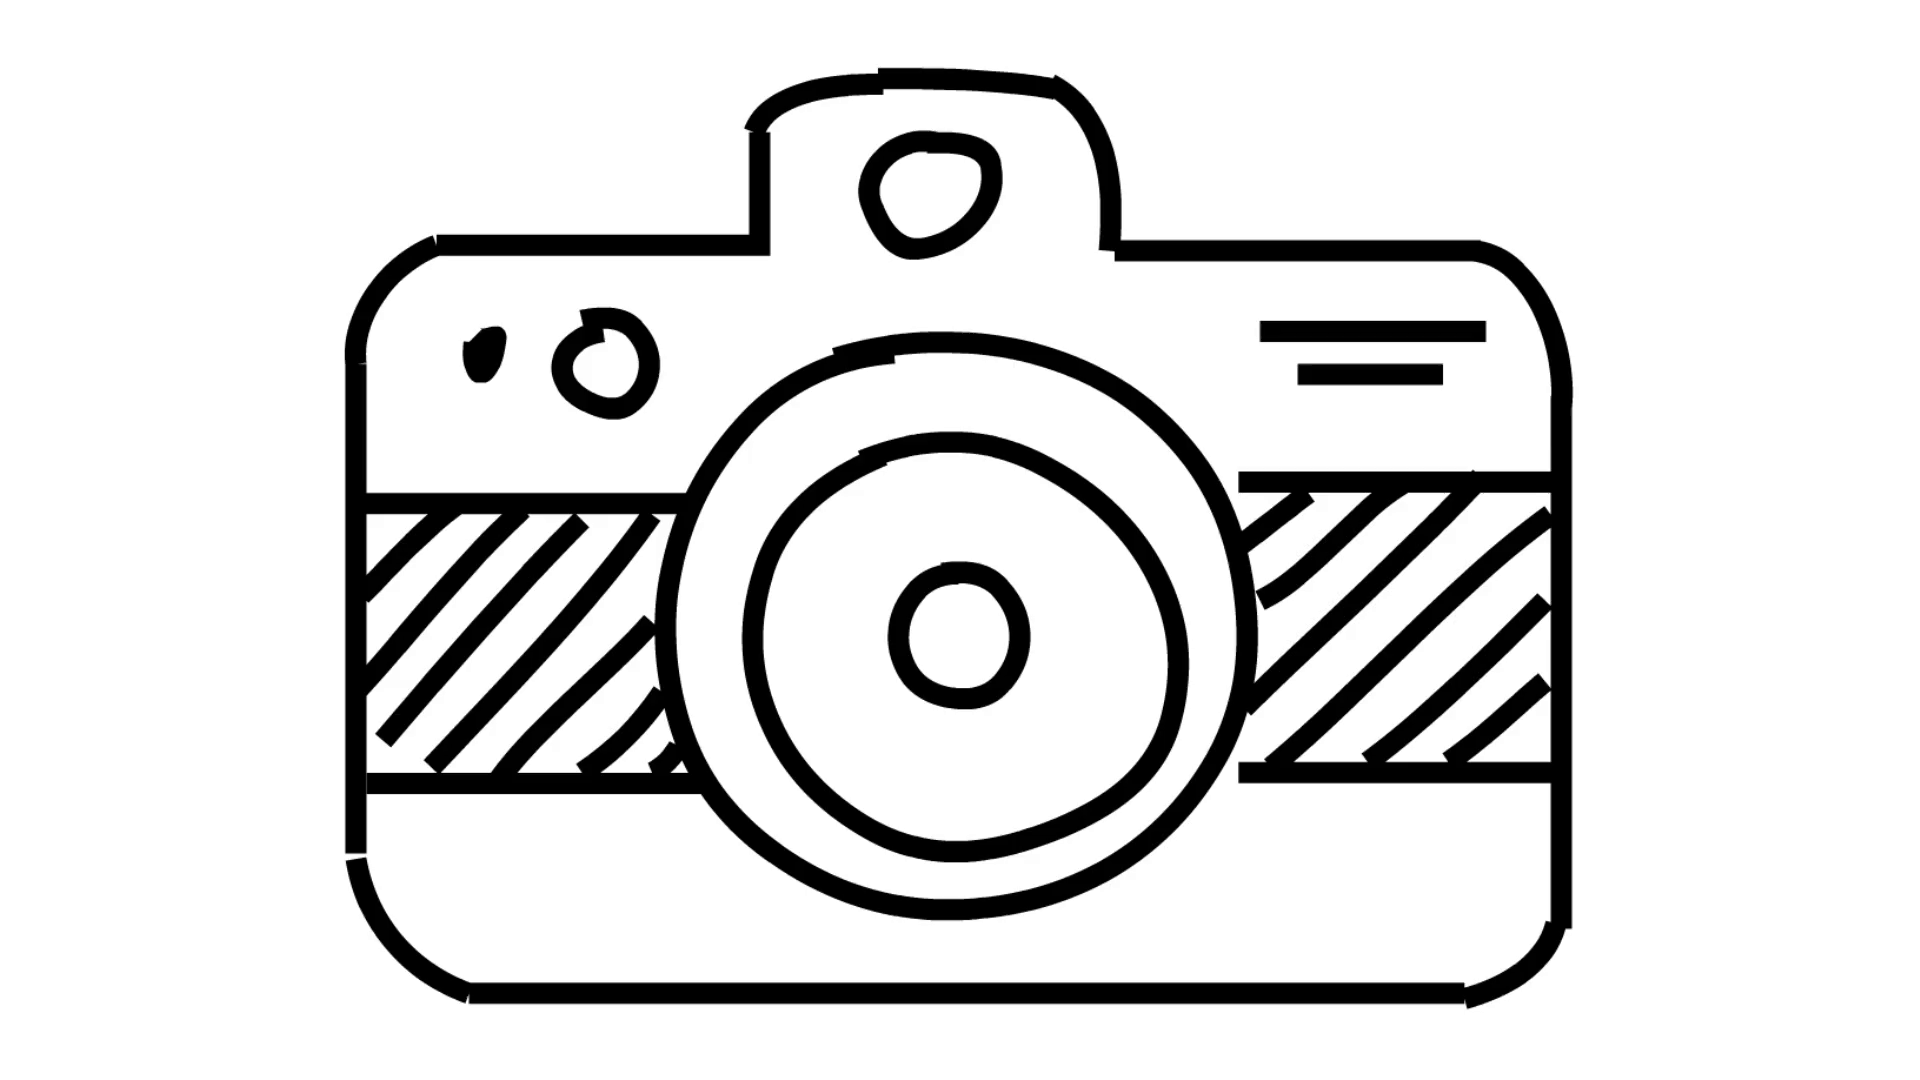 Camera clipart transparent background. Line drawing illustration animation